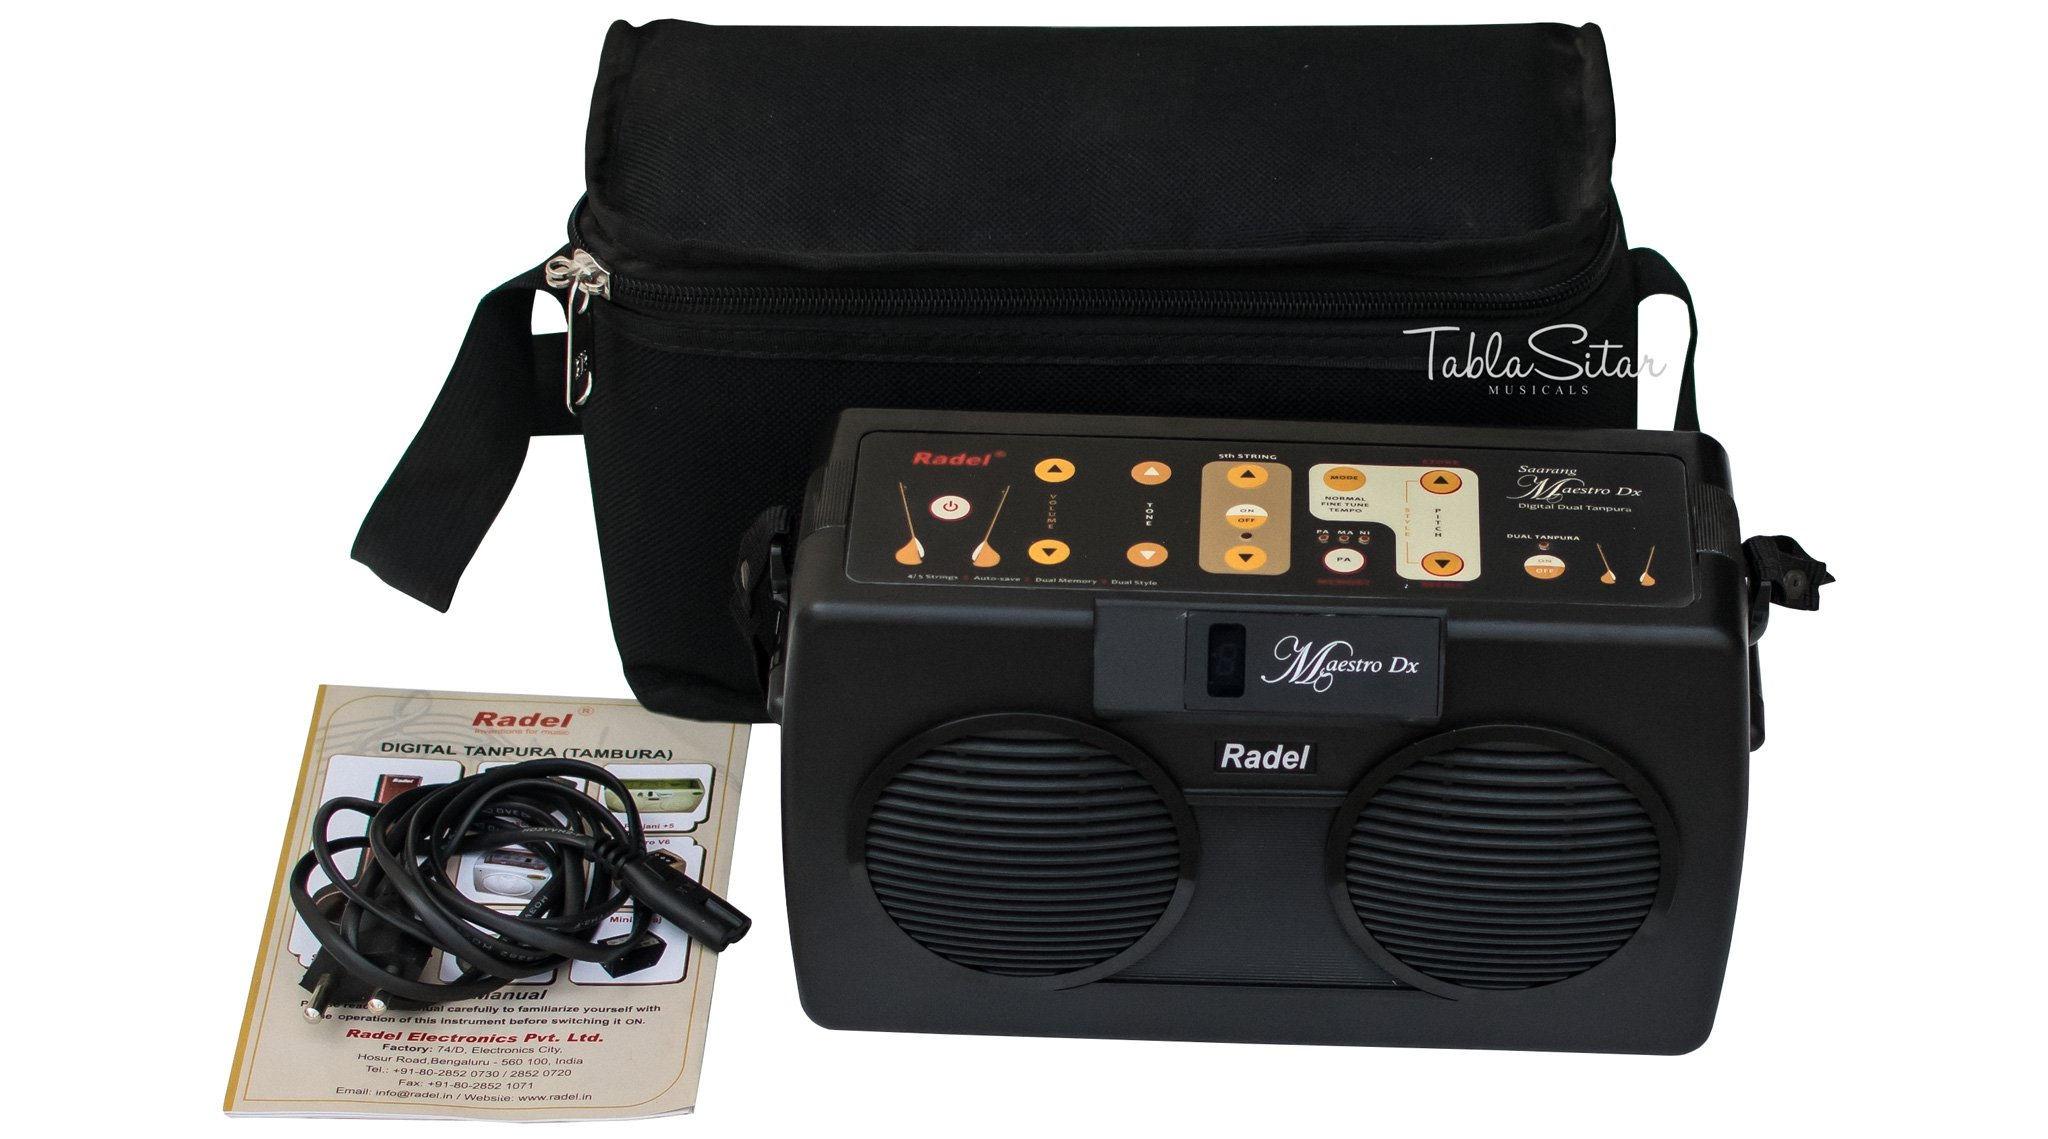 Radel at buyRaagini Maestro DX Electronic Tanpura Shruti Box (Black) product image